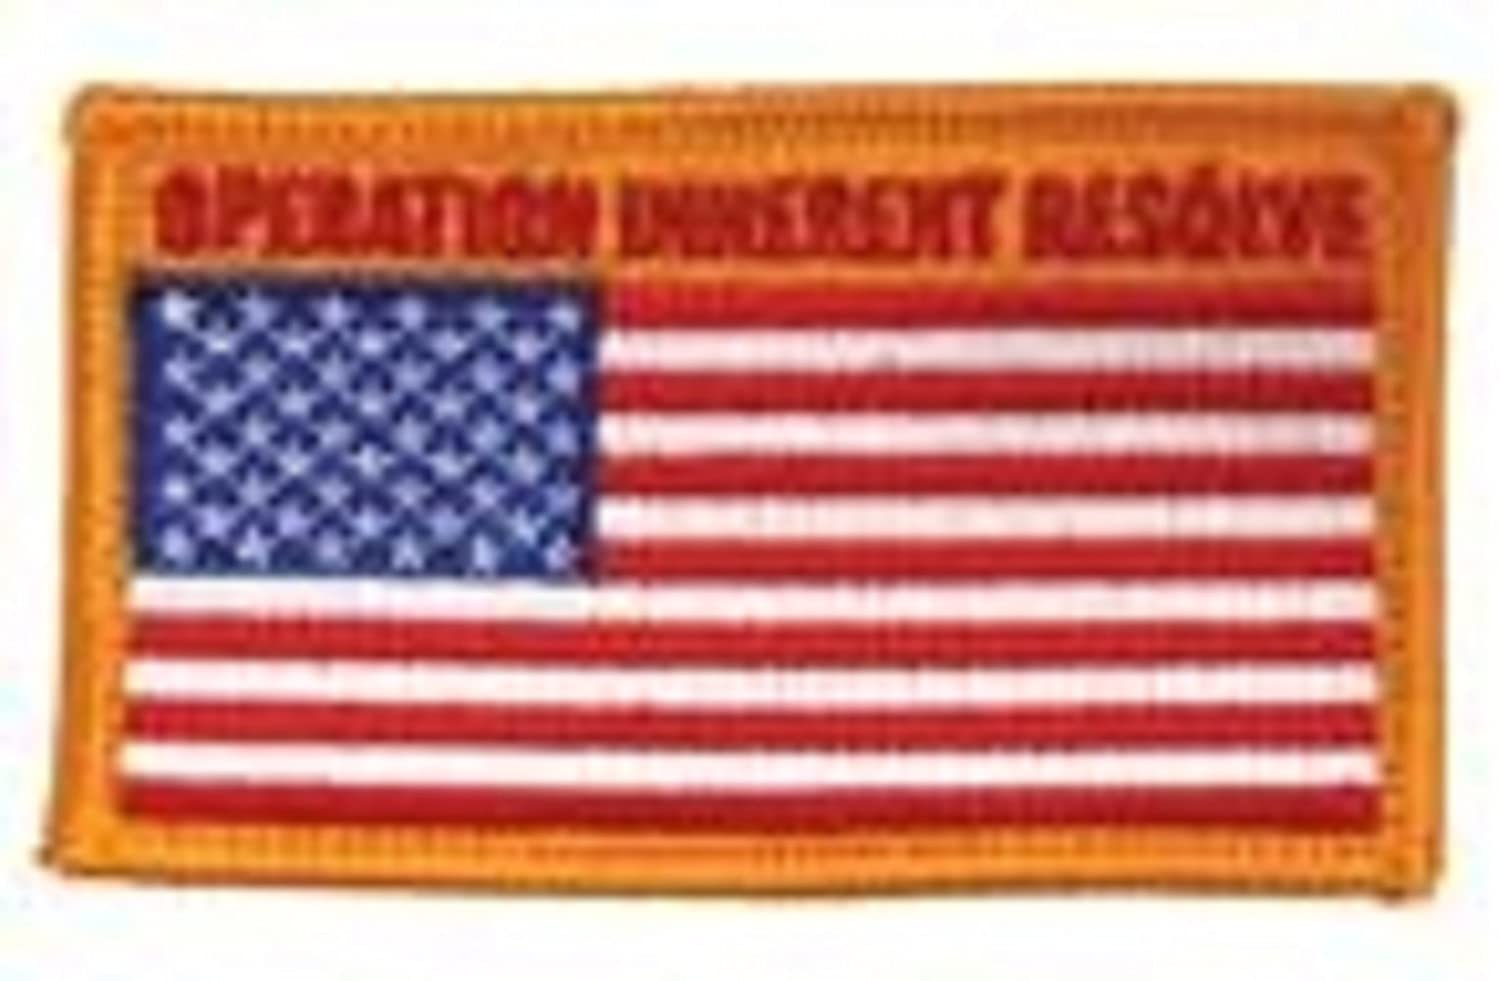 Operation Inherent Resolve with Flag 2